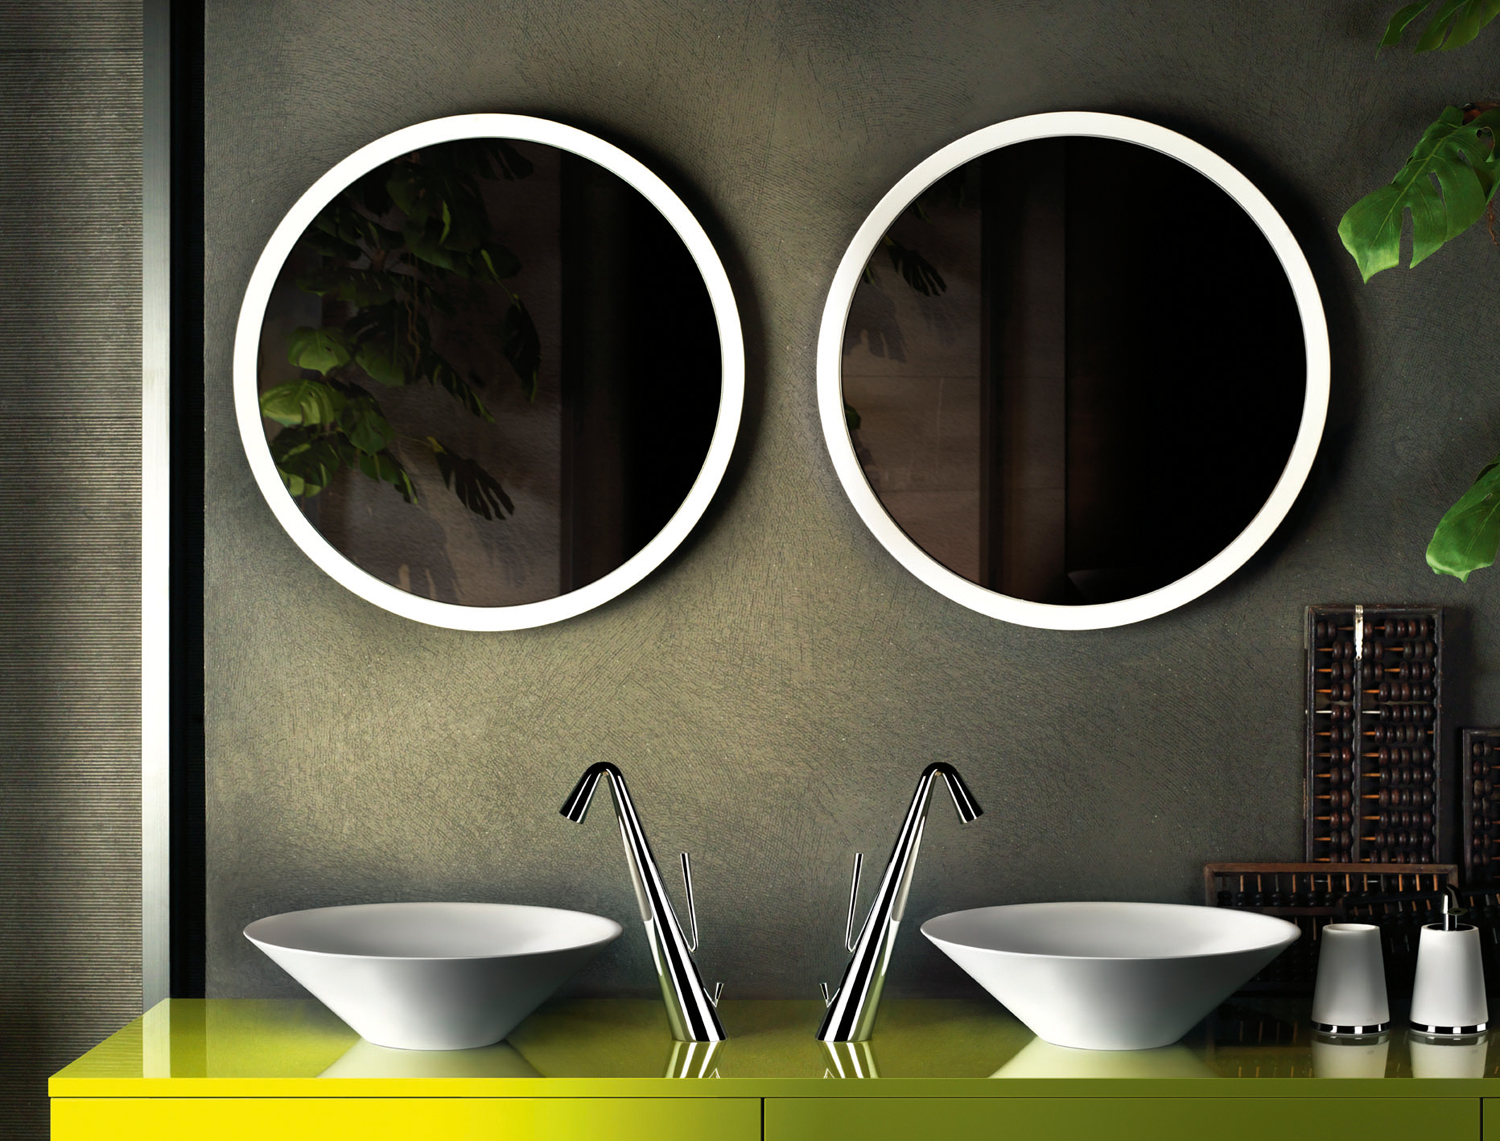 Jungle-inspired bathroom accessories